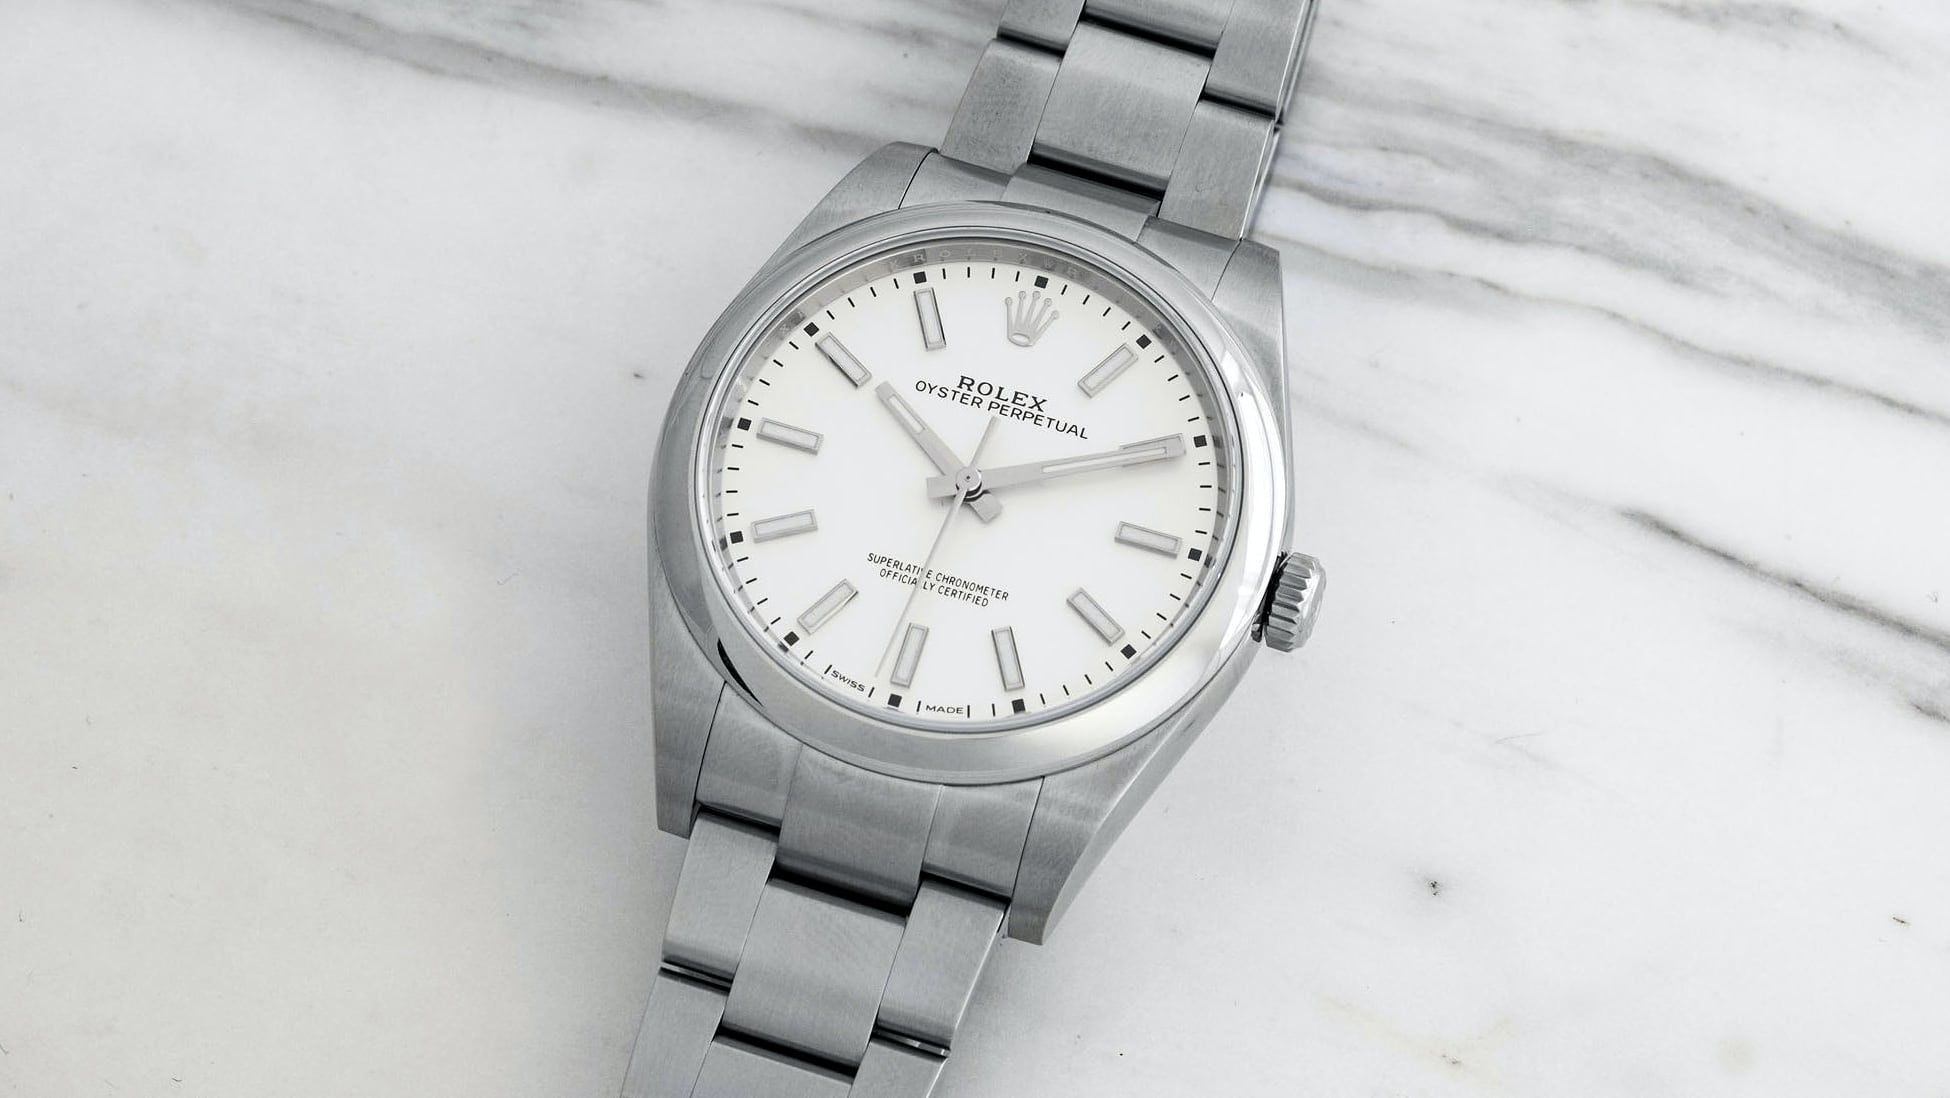 ae353c6571cc4 Editors' Picks: The One Watch I'd Wear Forever - HODINKEE